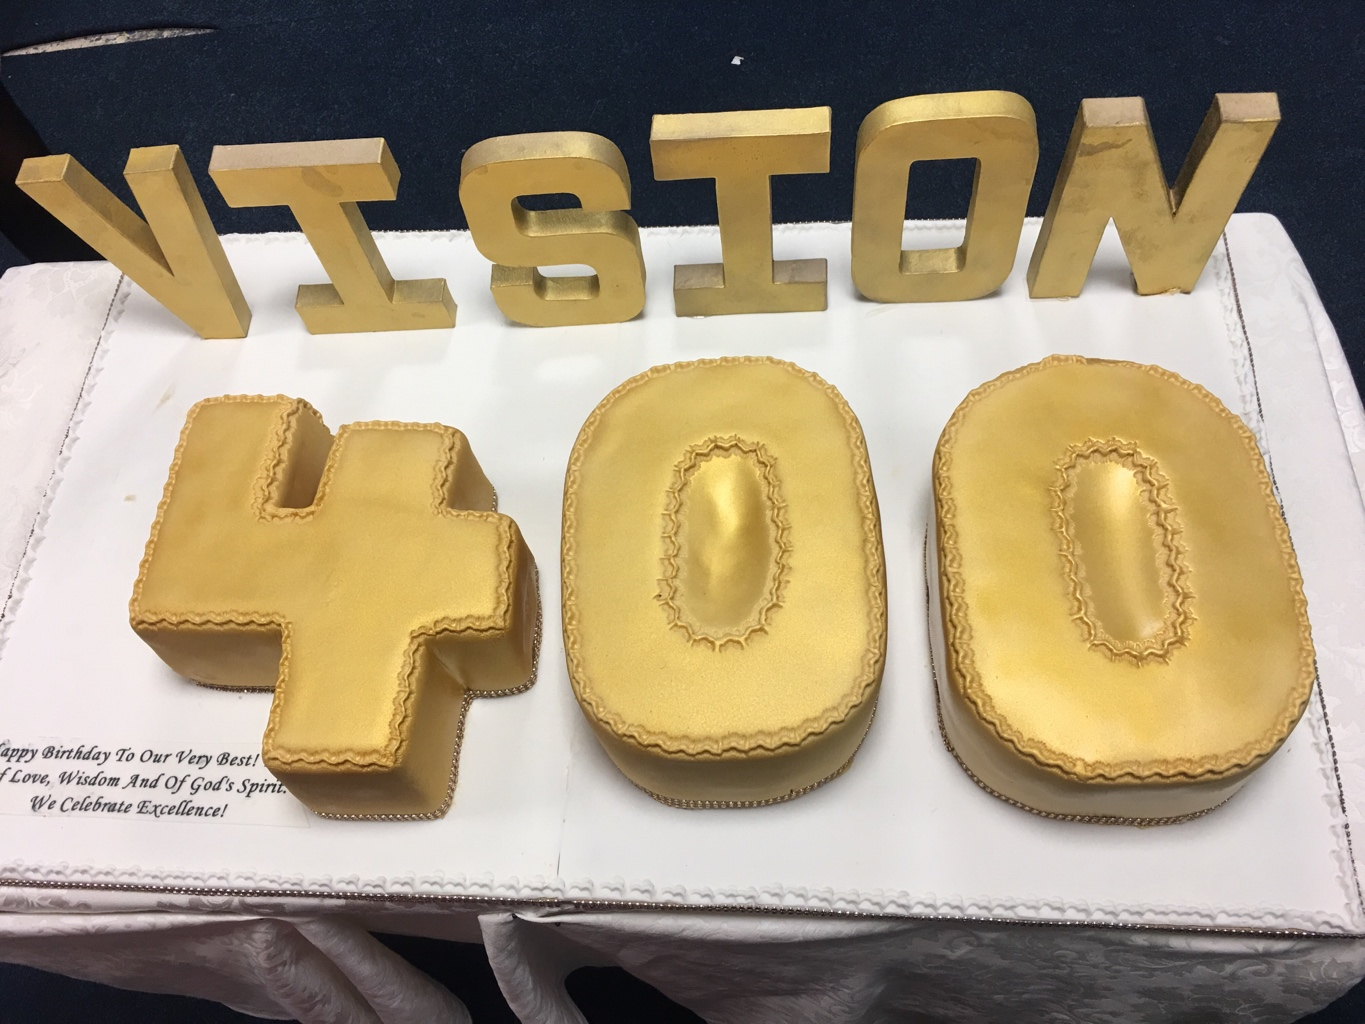 Some say vision400 is bread